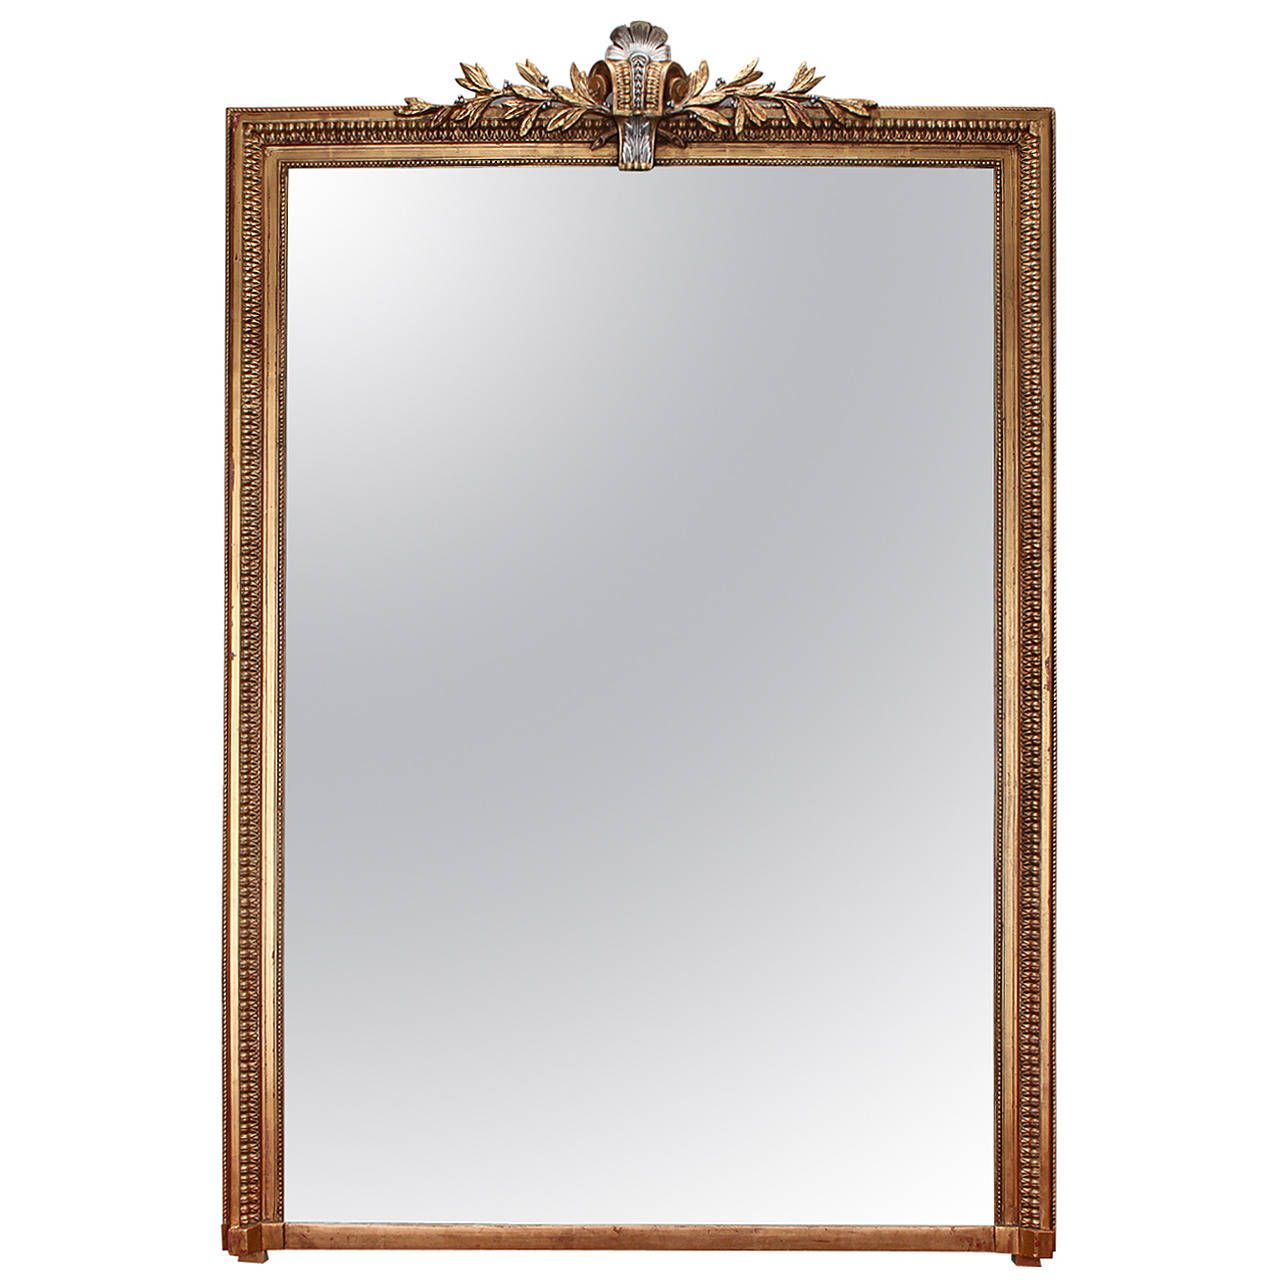 Large Gilt Wood Louis Philippe Mirror With Silver Leaf Gilt Crown   See more antique and modern Wall Mirrors at http://www.1stdibs.com/furniture/mirrors/wall-mirrors